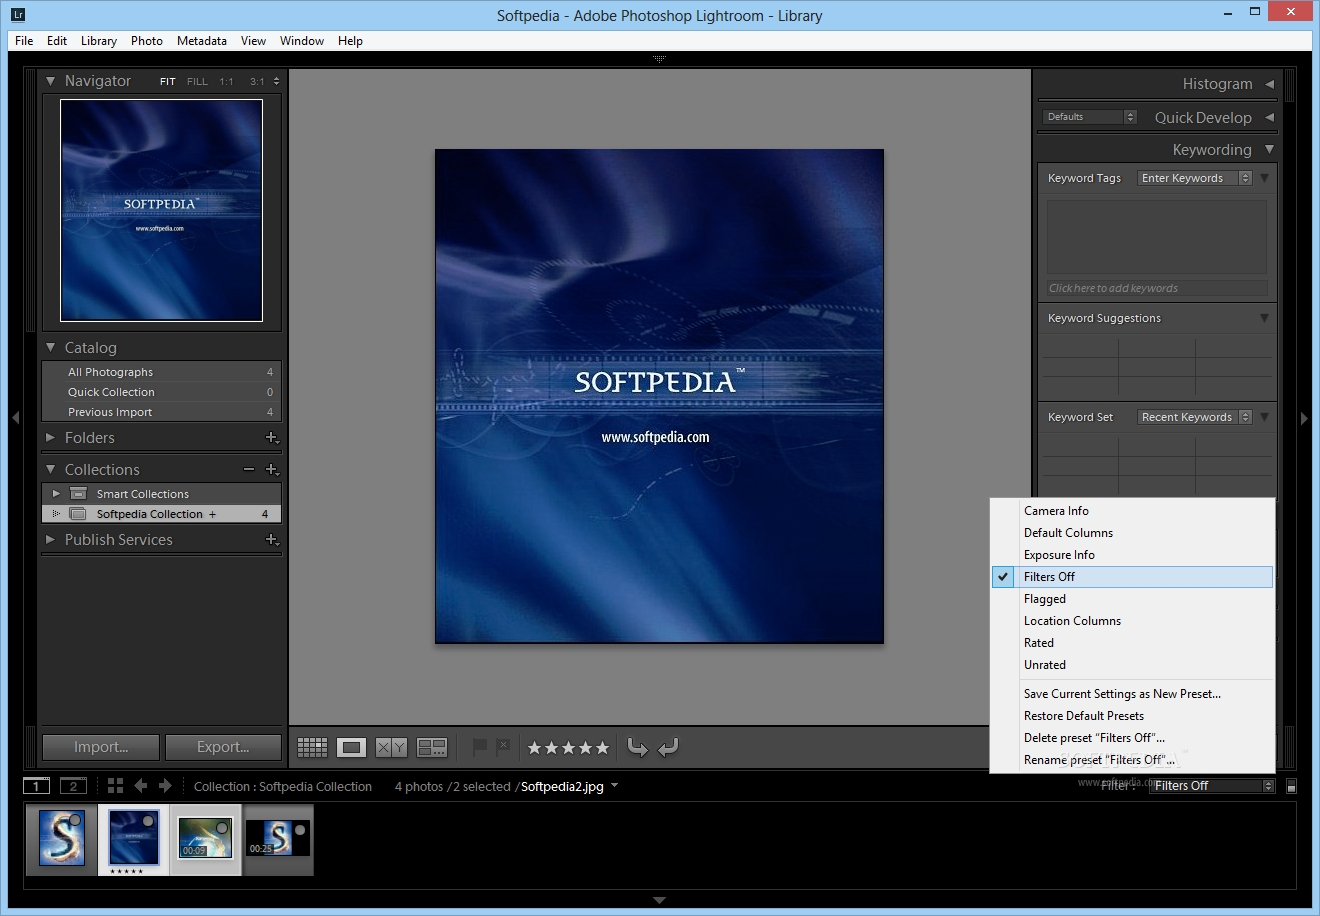 Adobe Photoshop Lightroom screenshot 4